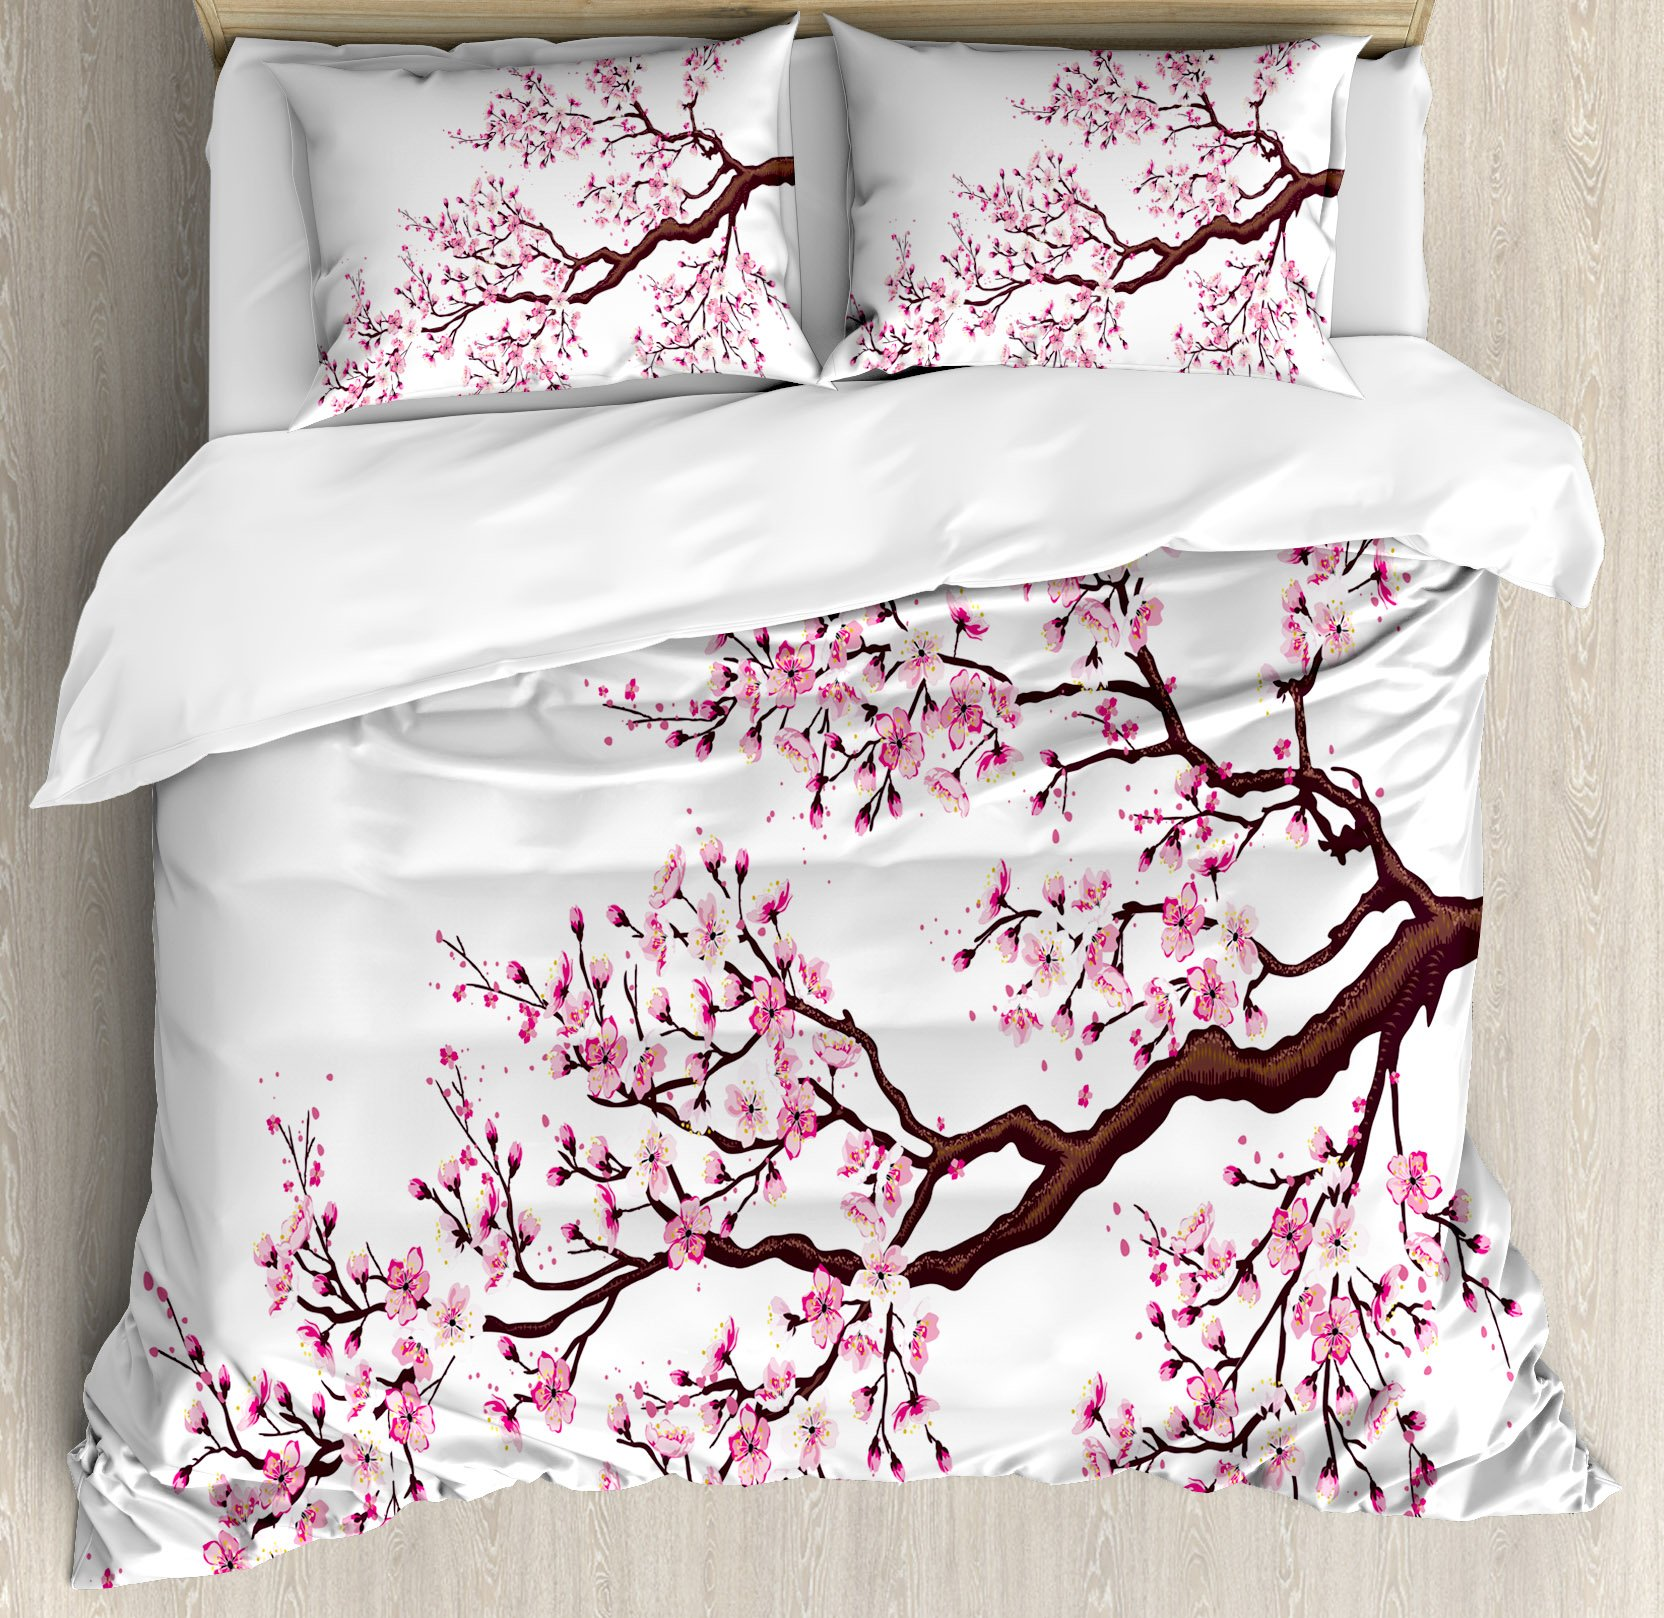 Japanese Duvet Cover Set King Size by Ambesonne, Branch of a Flourishing Sakura Tree Flowers Cherry Blossoms Spring Theme Art, Decorative 3 Piece Bedding Set with 2 Pillow Shams, Pink Dark Brown